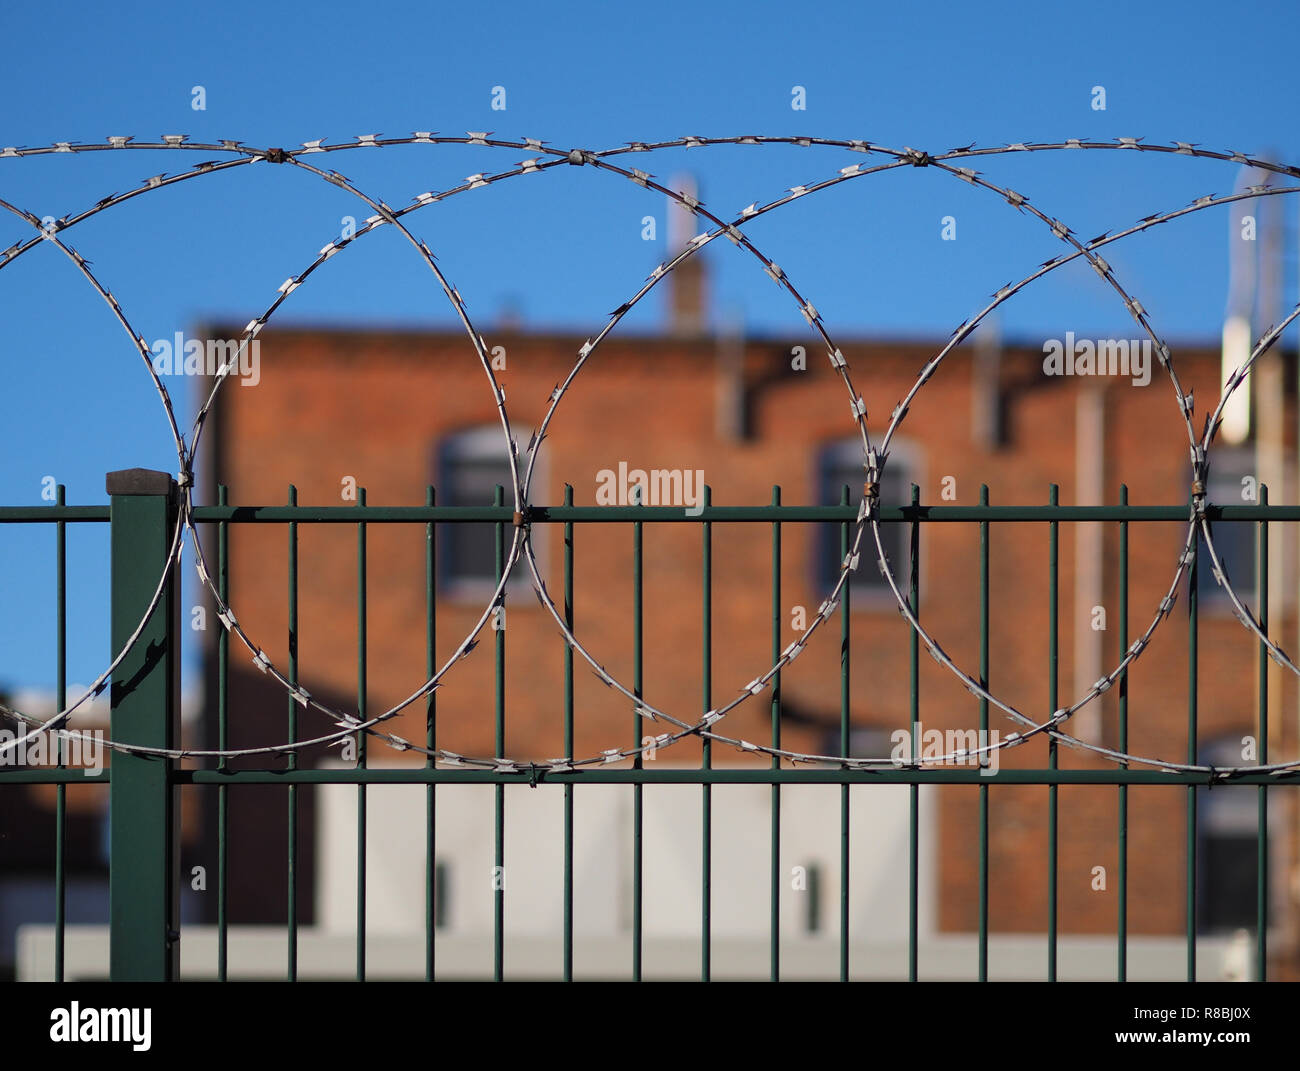 Green steel fence with barbed wire on top and red brick building in the background (out of focus) Stock Photo